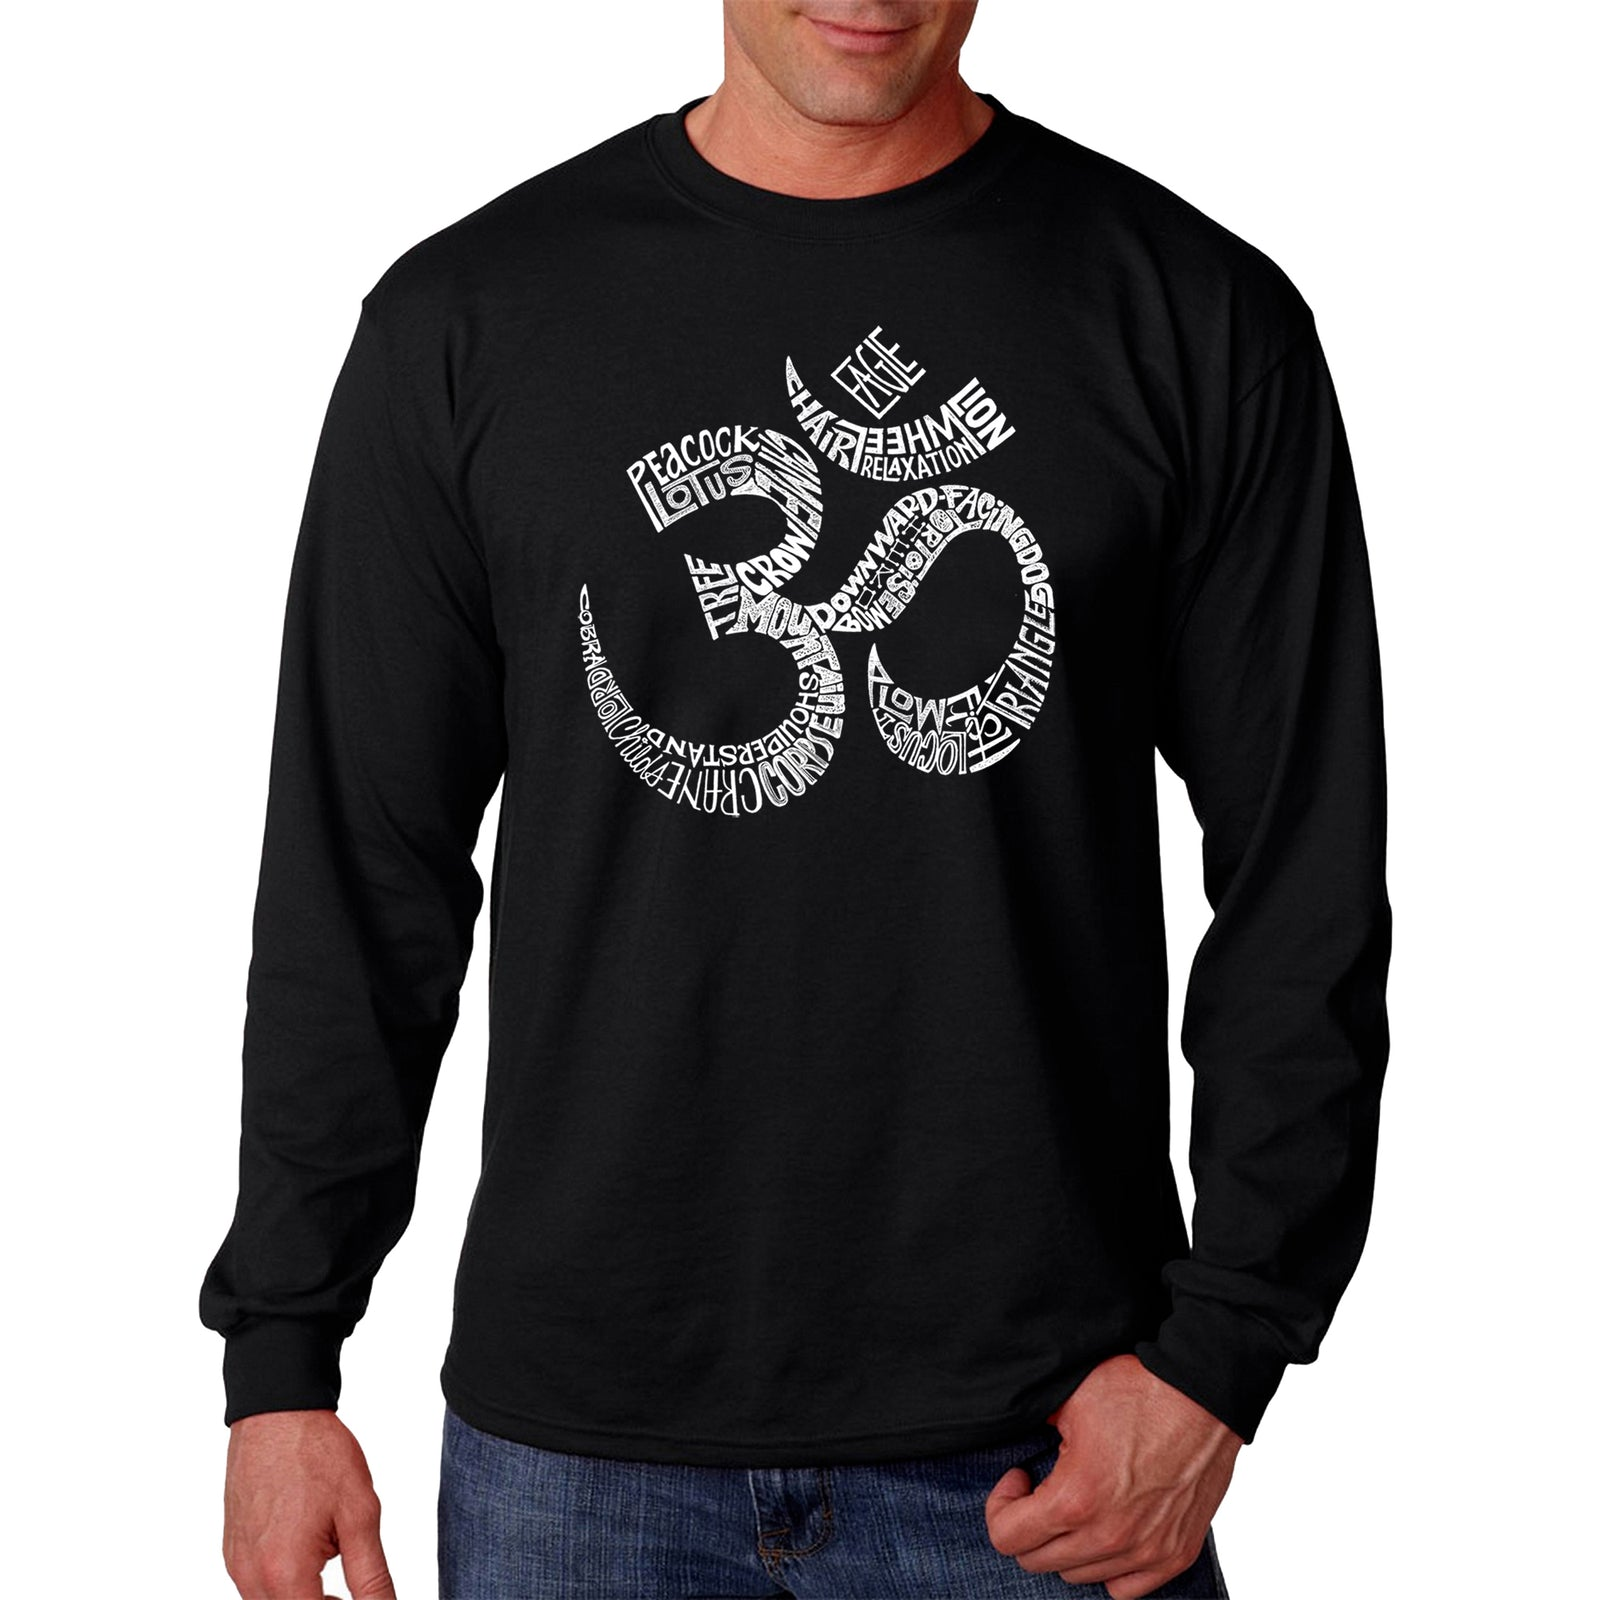 Men's Long Sleeve T-shirt - Poses OM